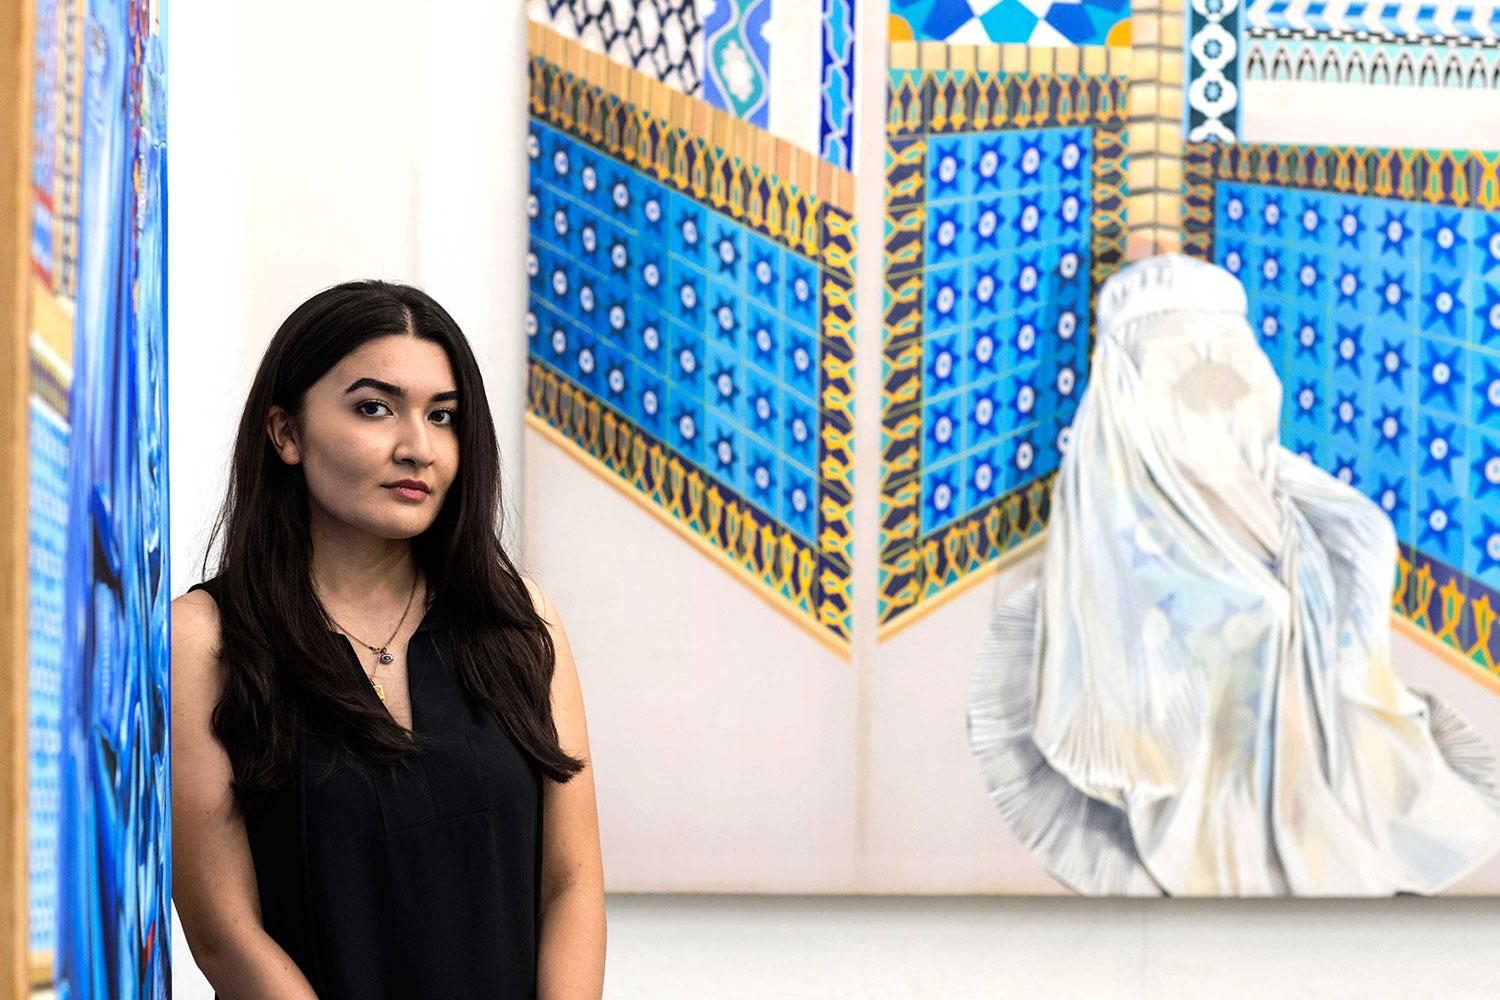 Afghan Dan a dangerous woman': uva artist calls attention to plight of